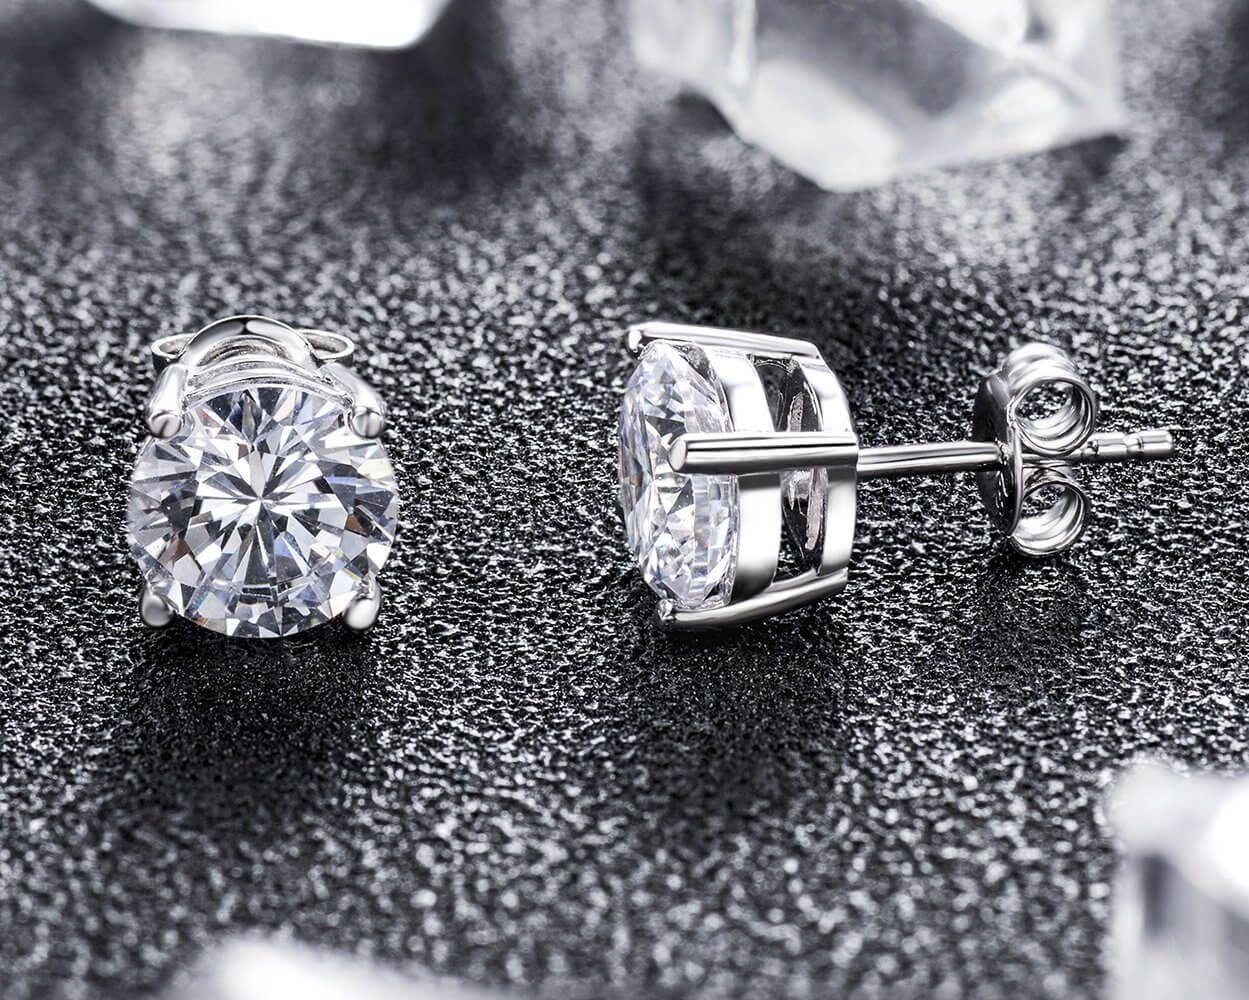 How To Tell If A Diamond Earring Is Real Answered Real Diamond Earrings Fake Diamond Diamond Studs